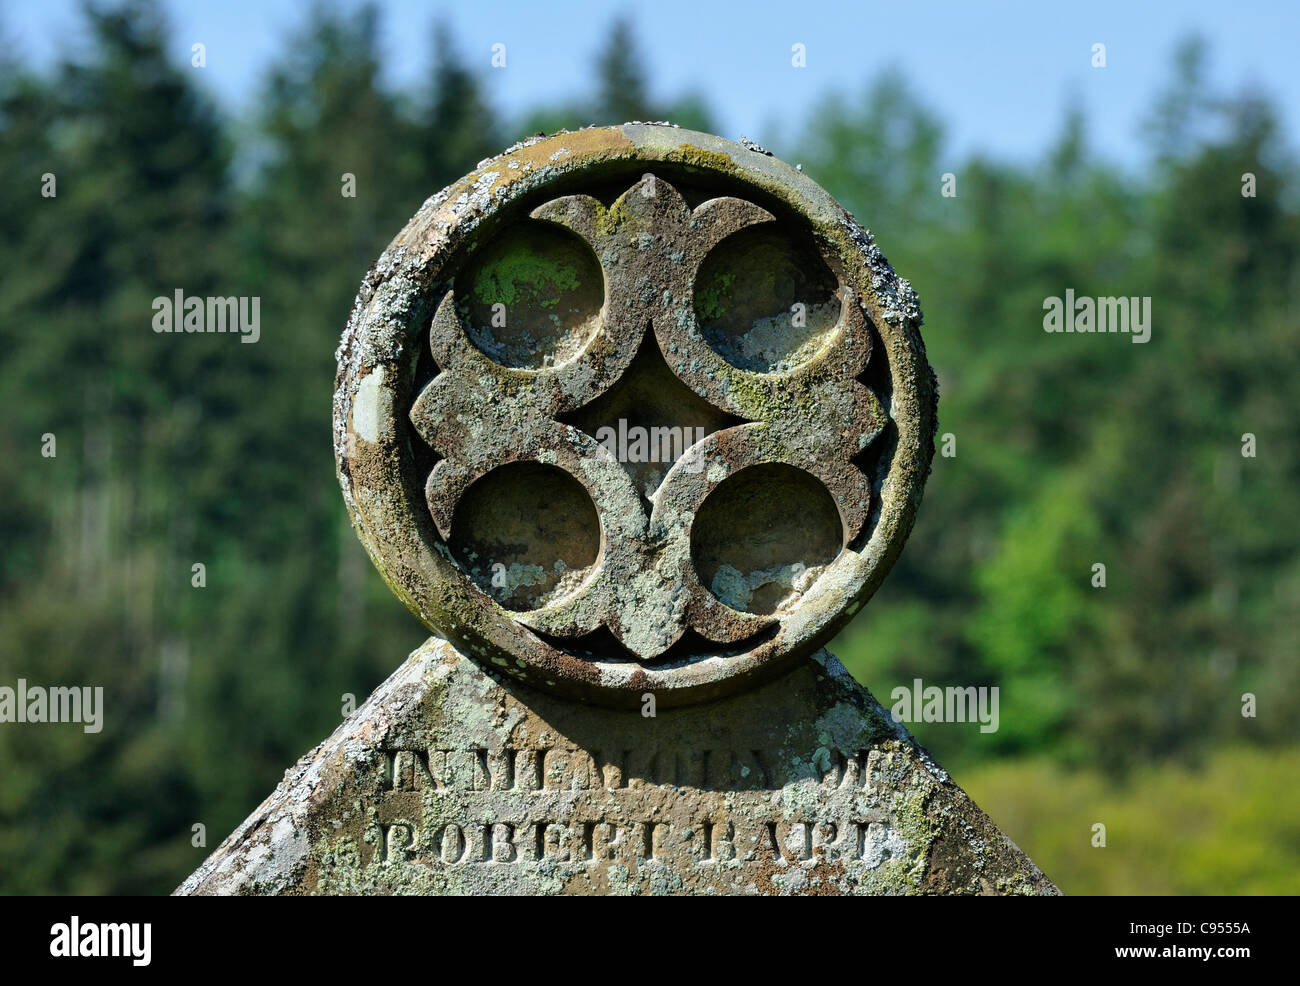 Detail of gravestone with cross motif. Church of Saint Michael, Lowther, Cumbria, England, United Kingdom, Europe. Stock Photo